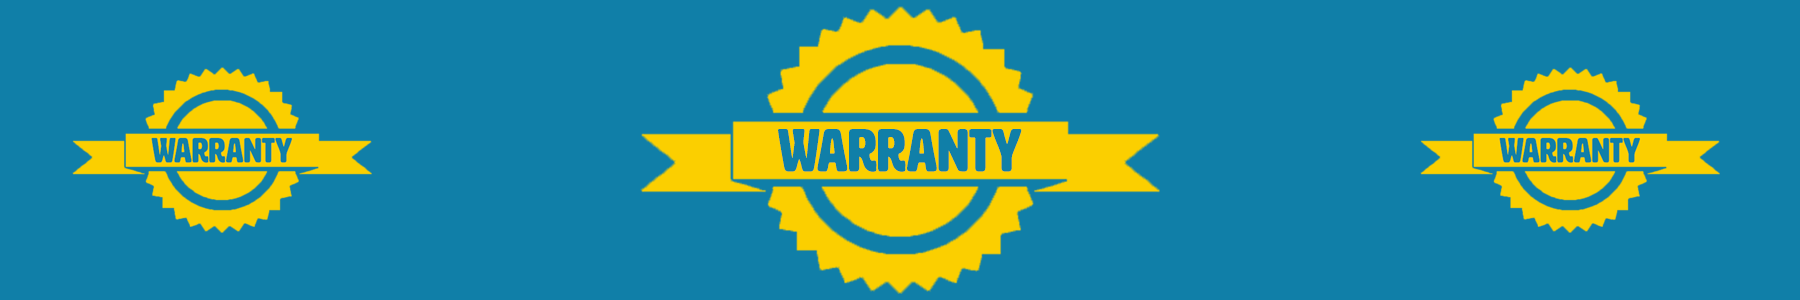 Spare and Square warranty